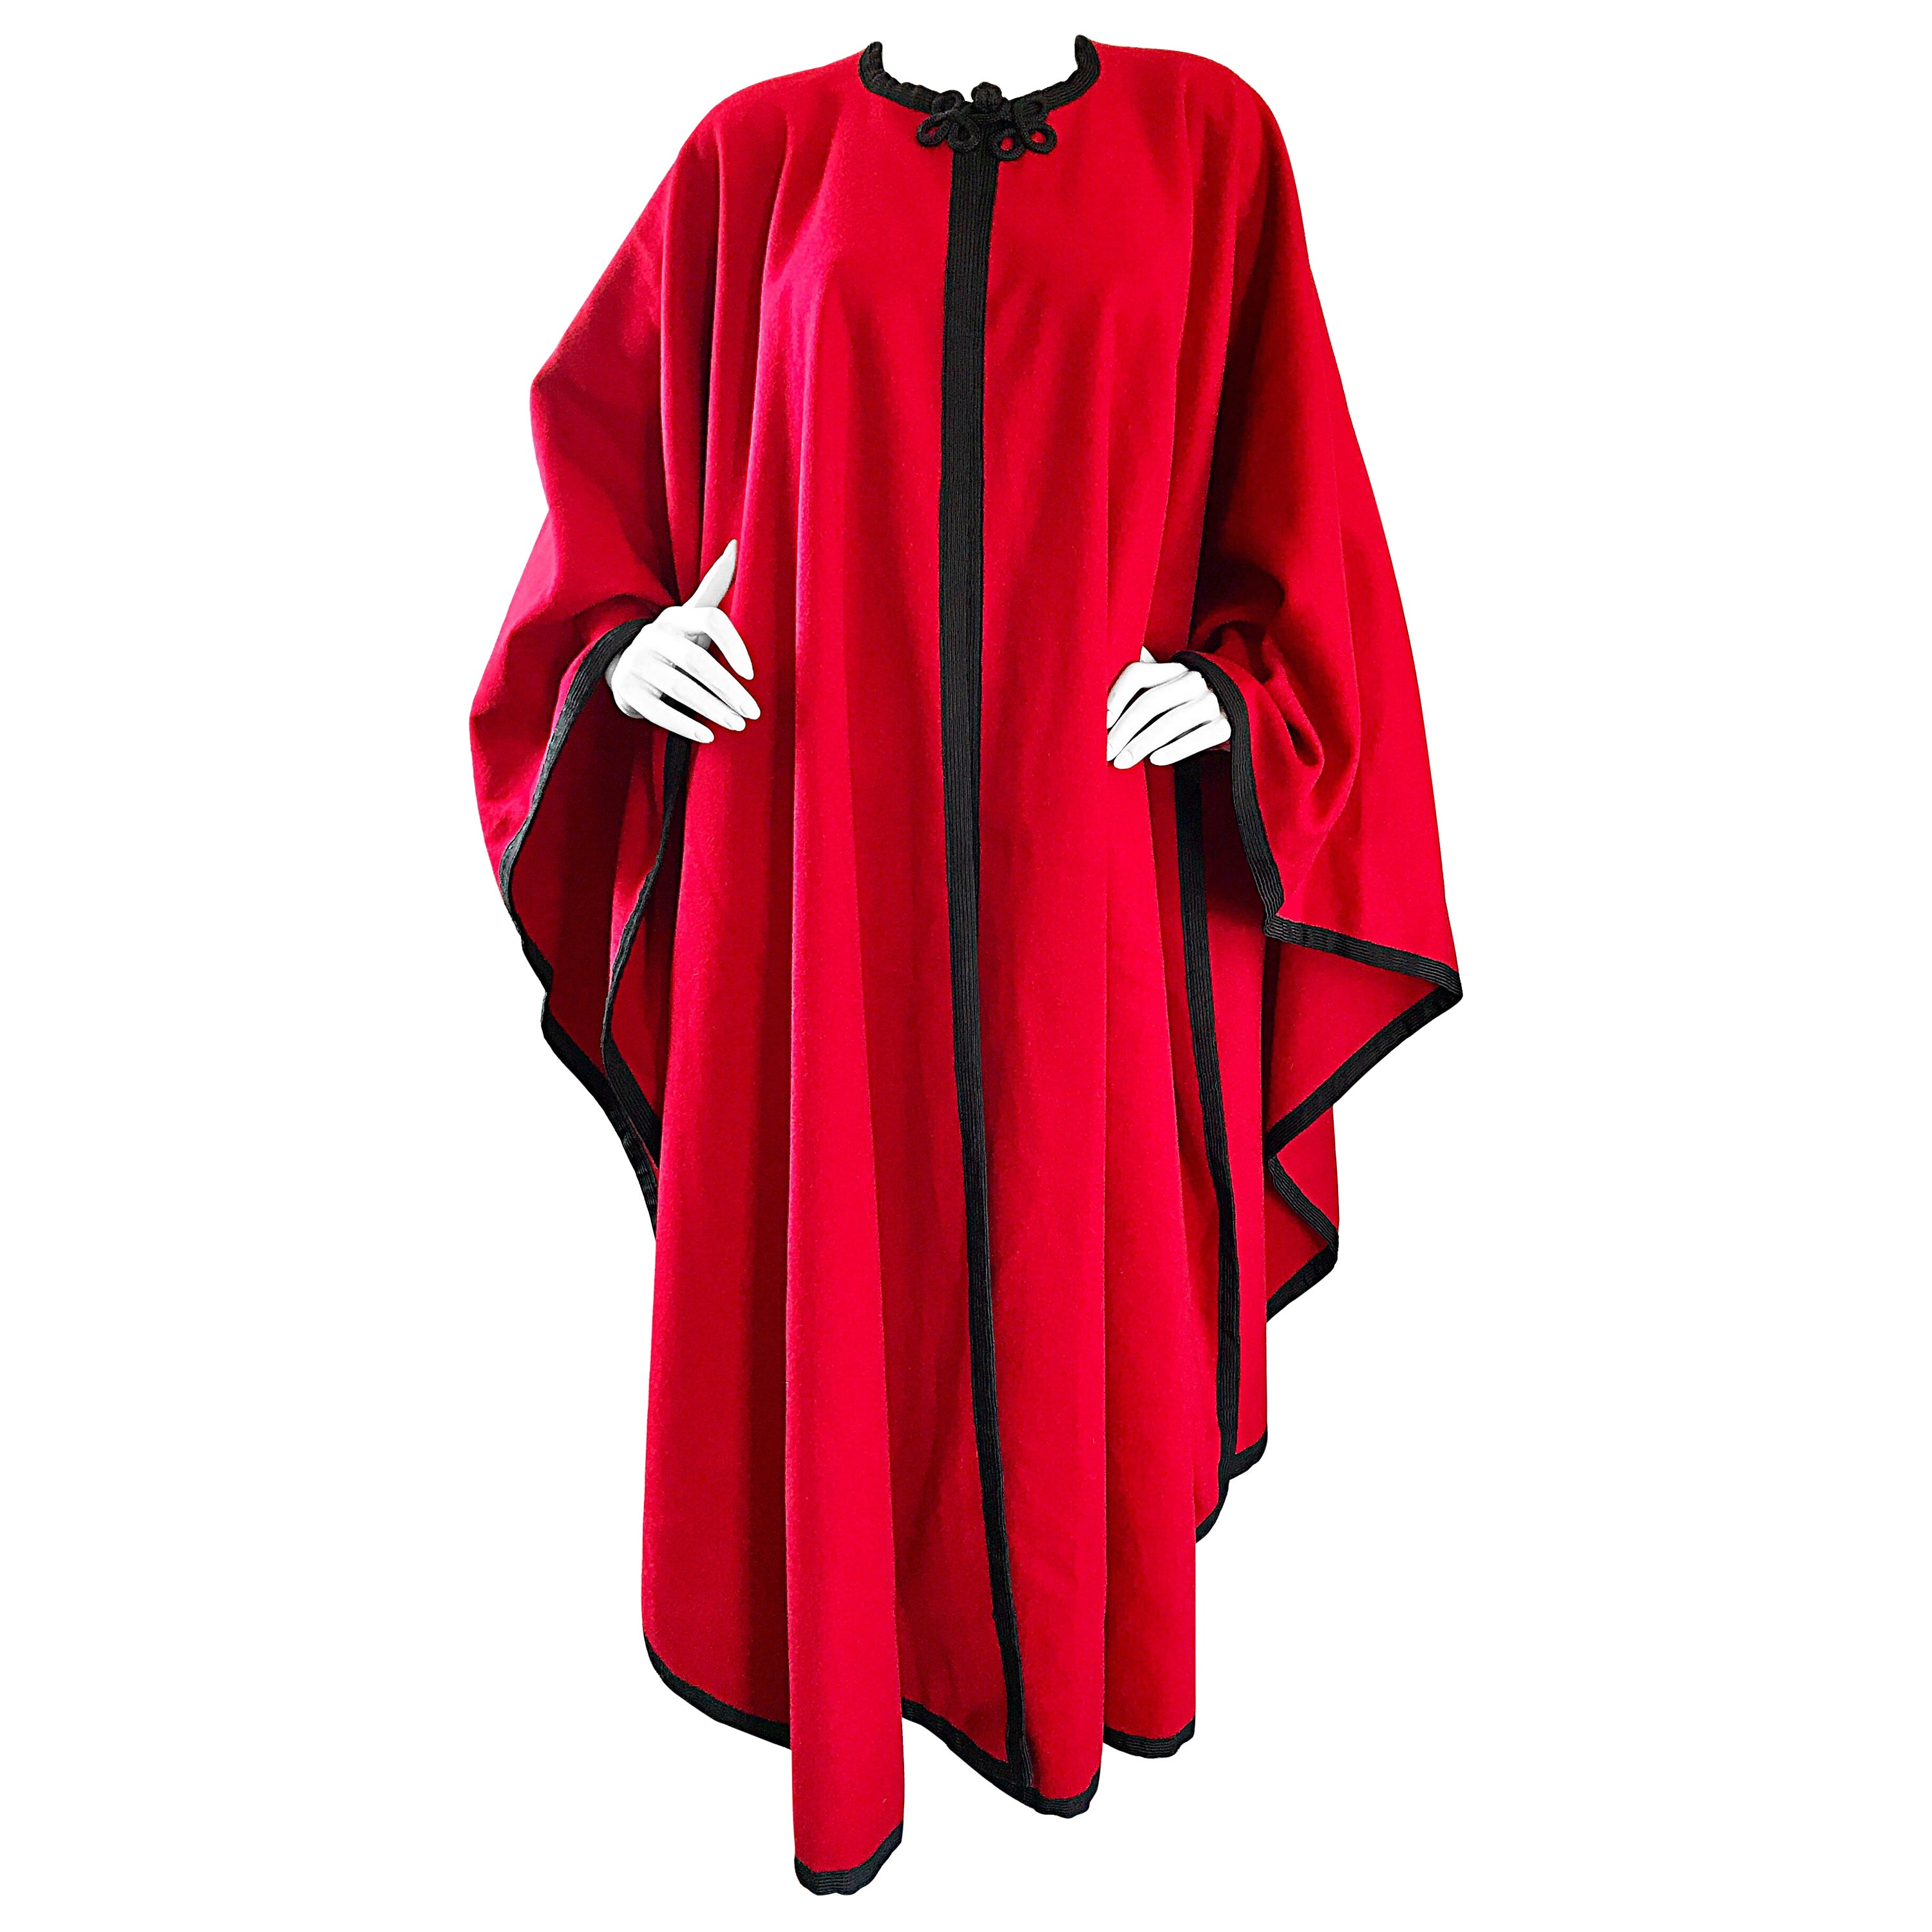 Rare Vintage Yves Saint Laurent Russian Collection 1970s Red Wool Cape Jacket